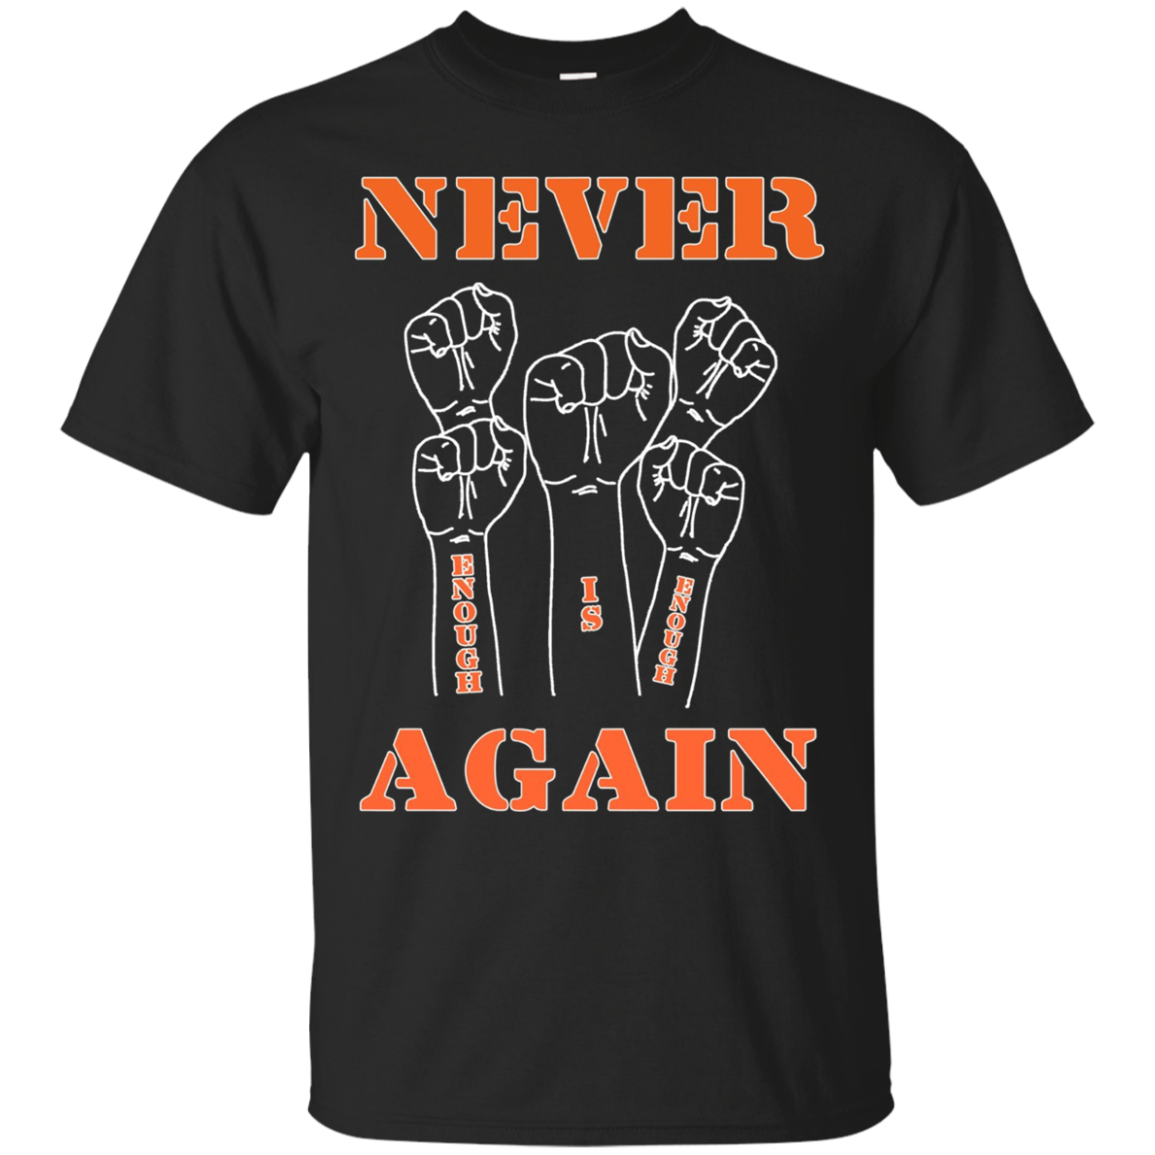 Never Again Enough Is Enough Fists Orange Word Protester Tee